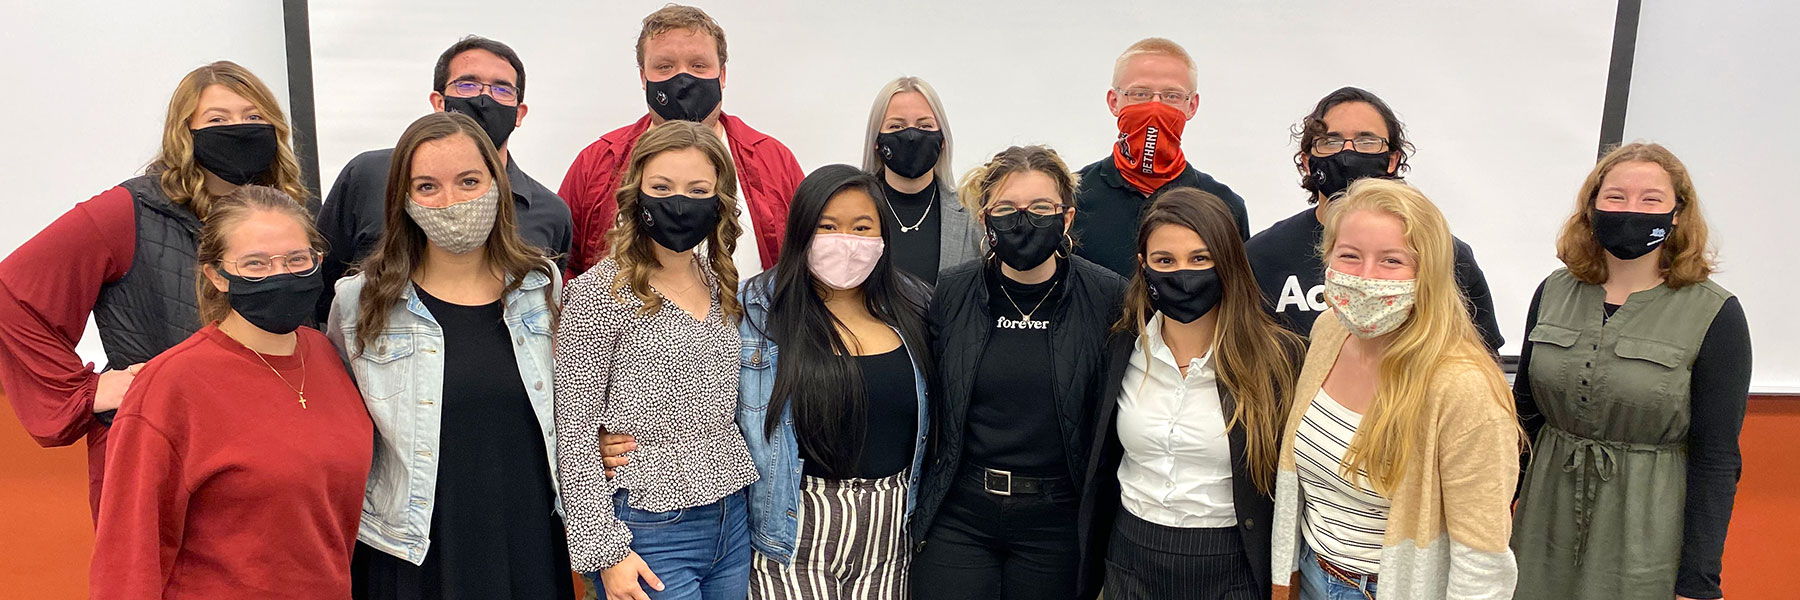 Photo of students with masks on in a group representing student senate